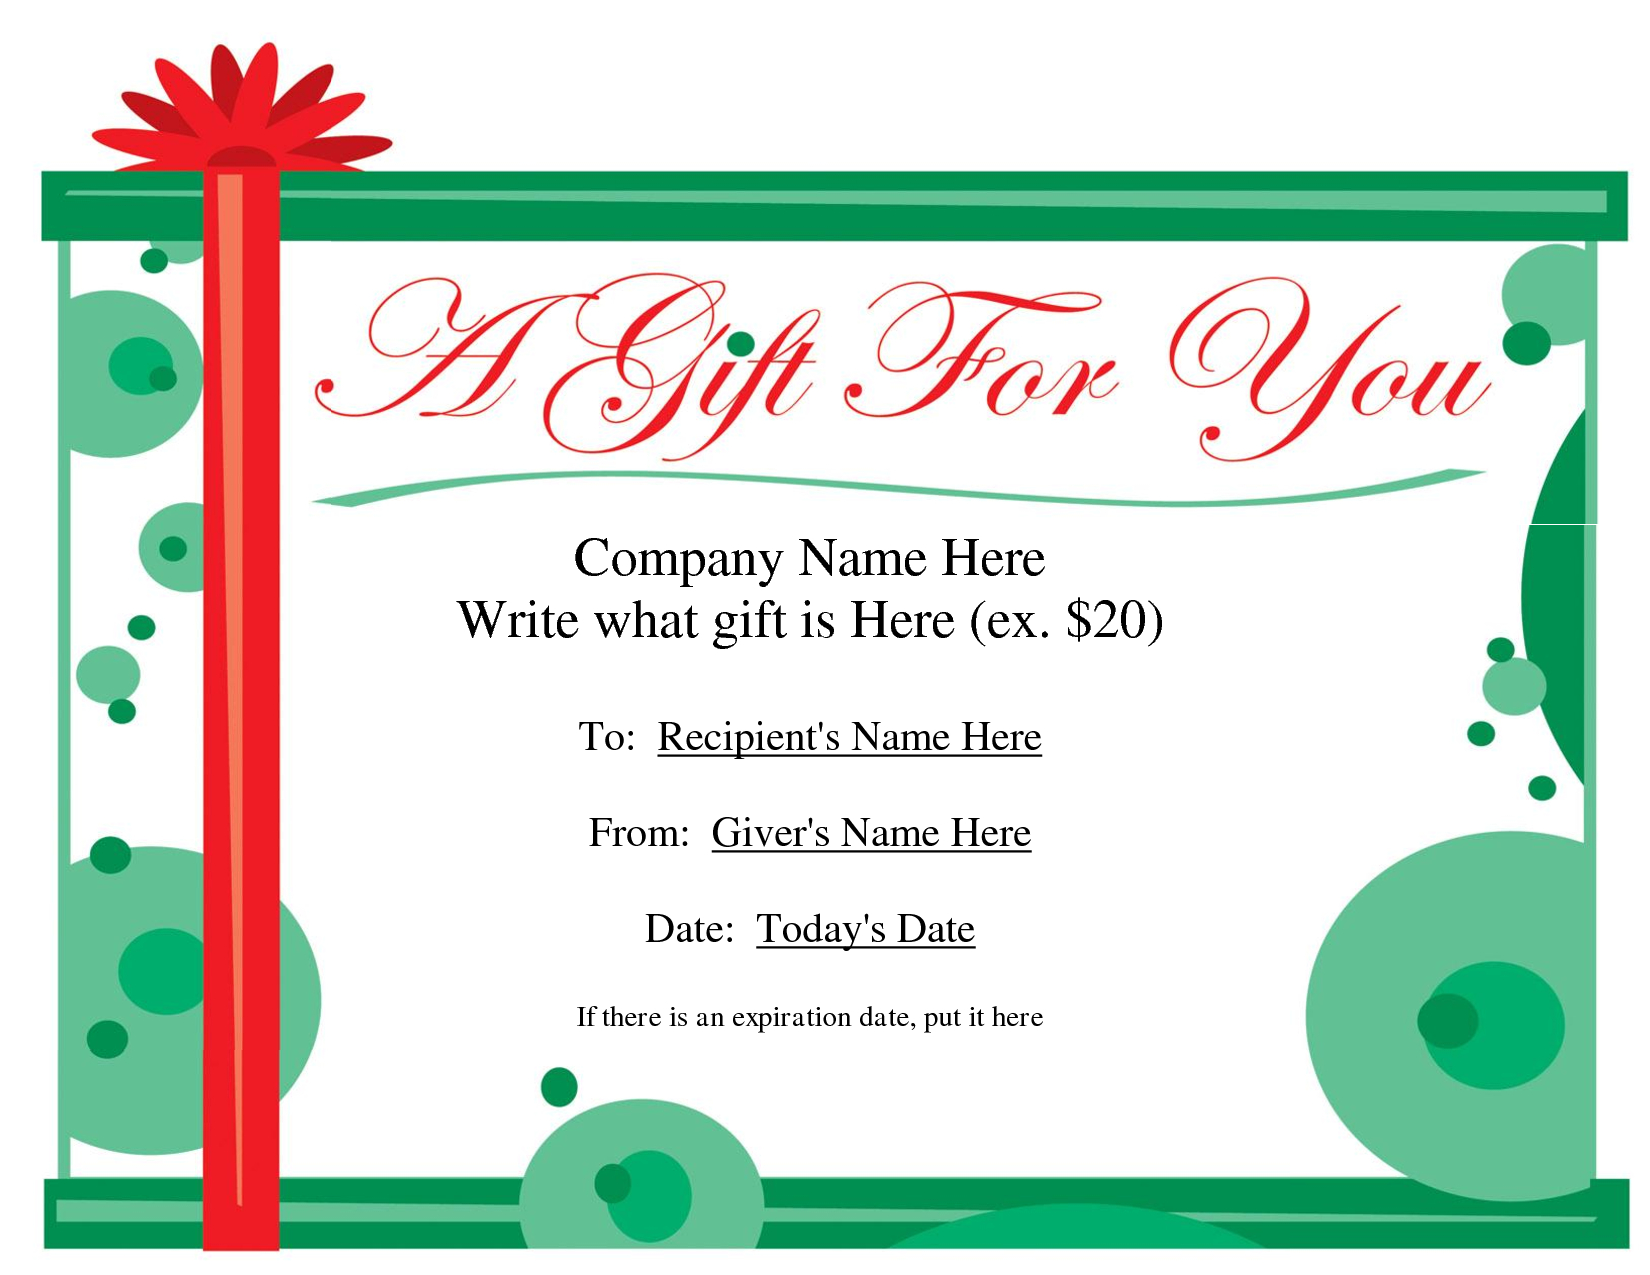 Free Christmas Gift Certificate Templates | Ideas For The House - Free Printable Gift Coupons